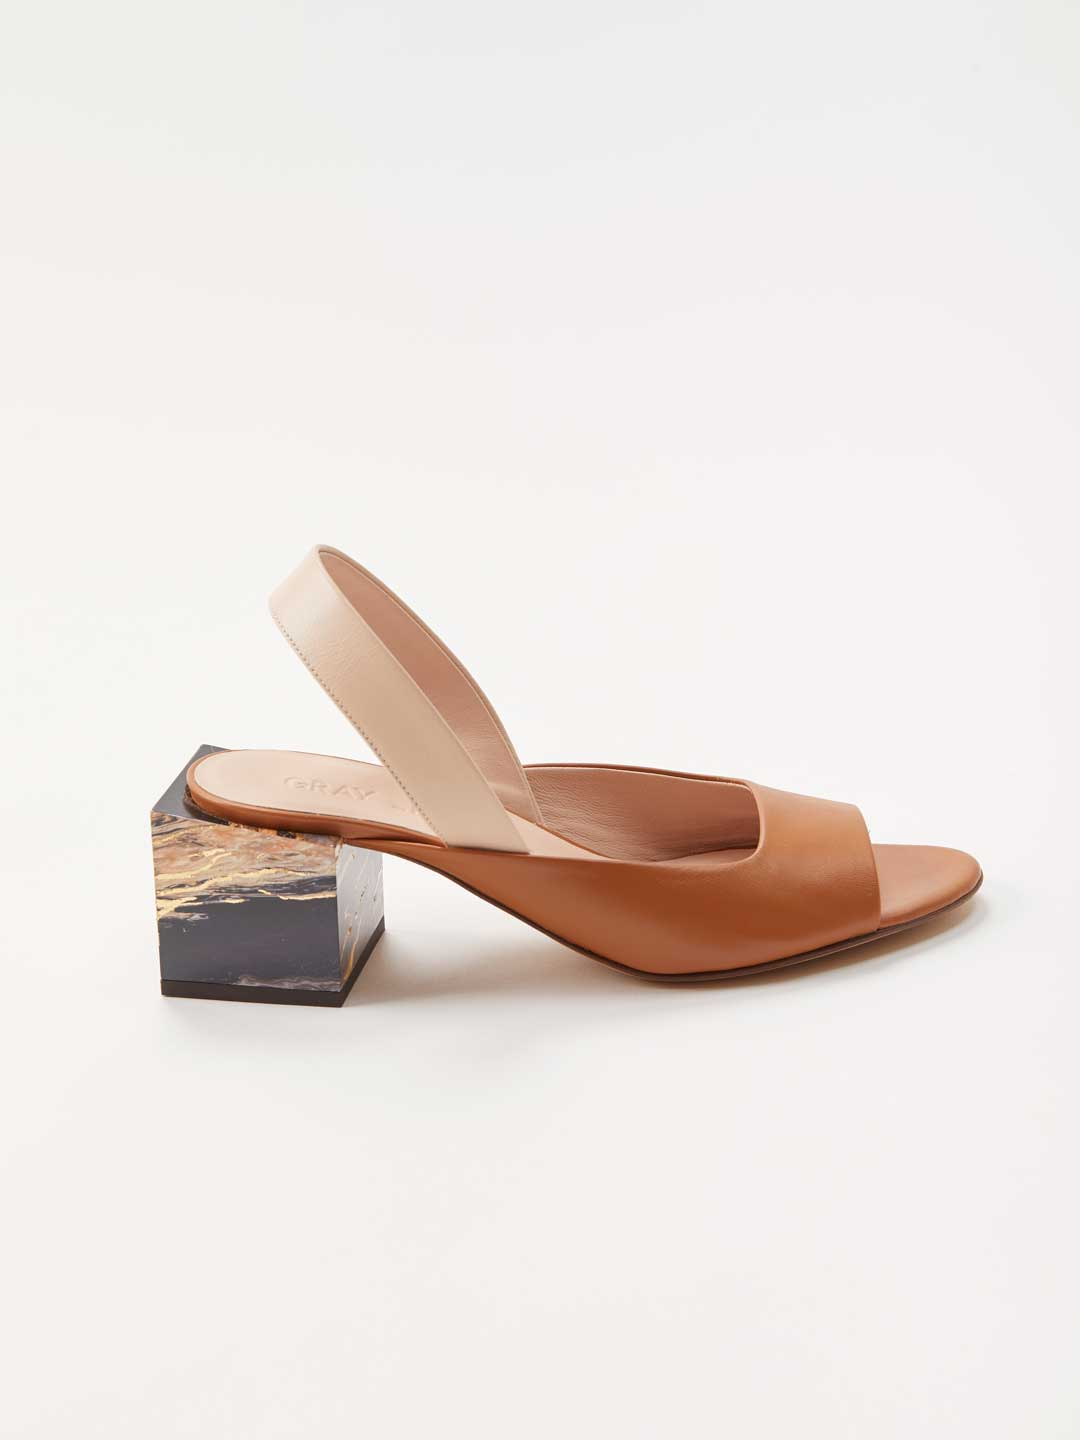 Cubic Heel Sling-back Mules - Brown